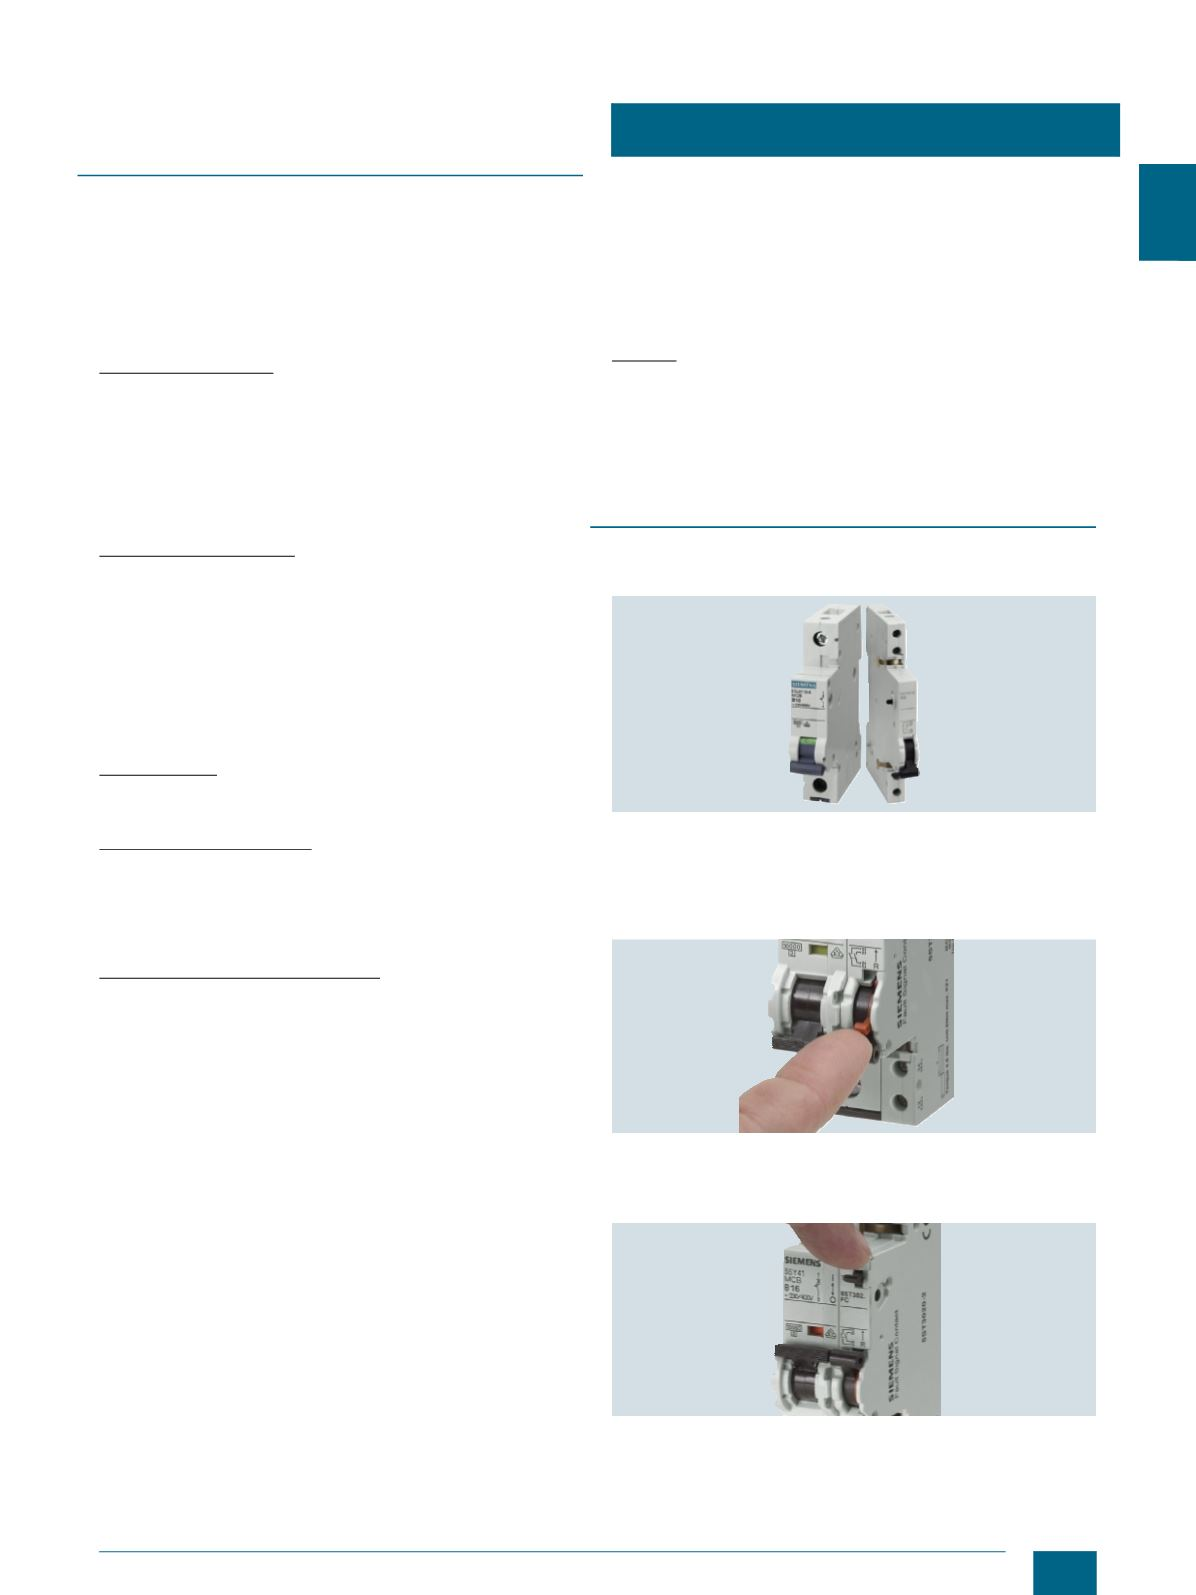 Miniature Circuit Breakers In The Off Position Without Locking Out An Entire